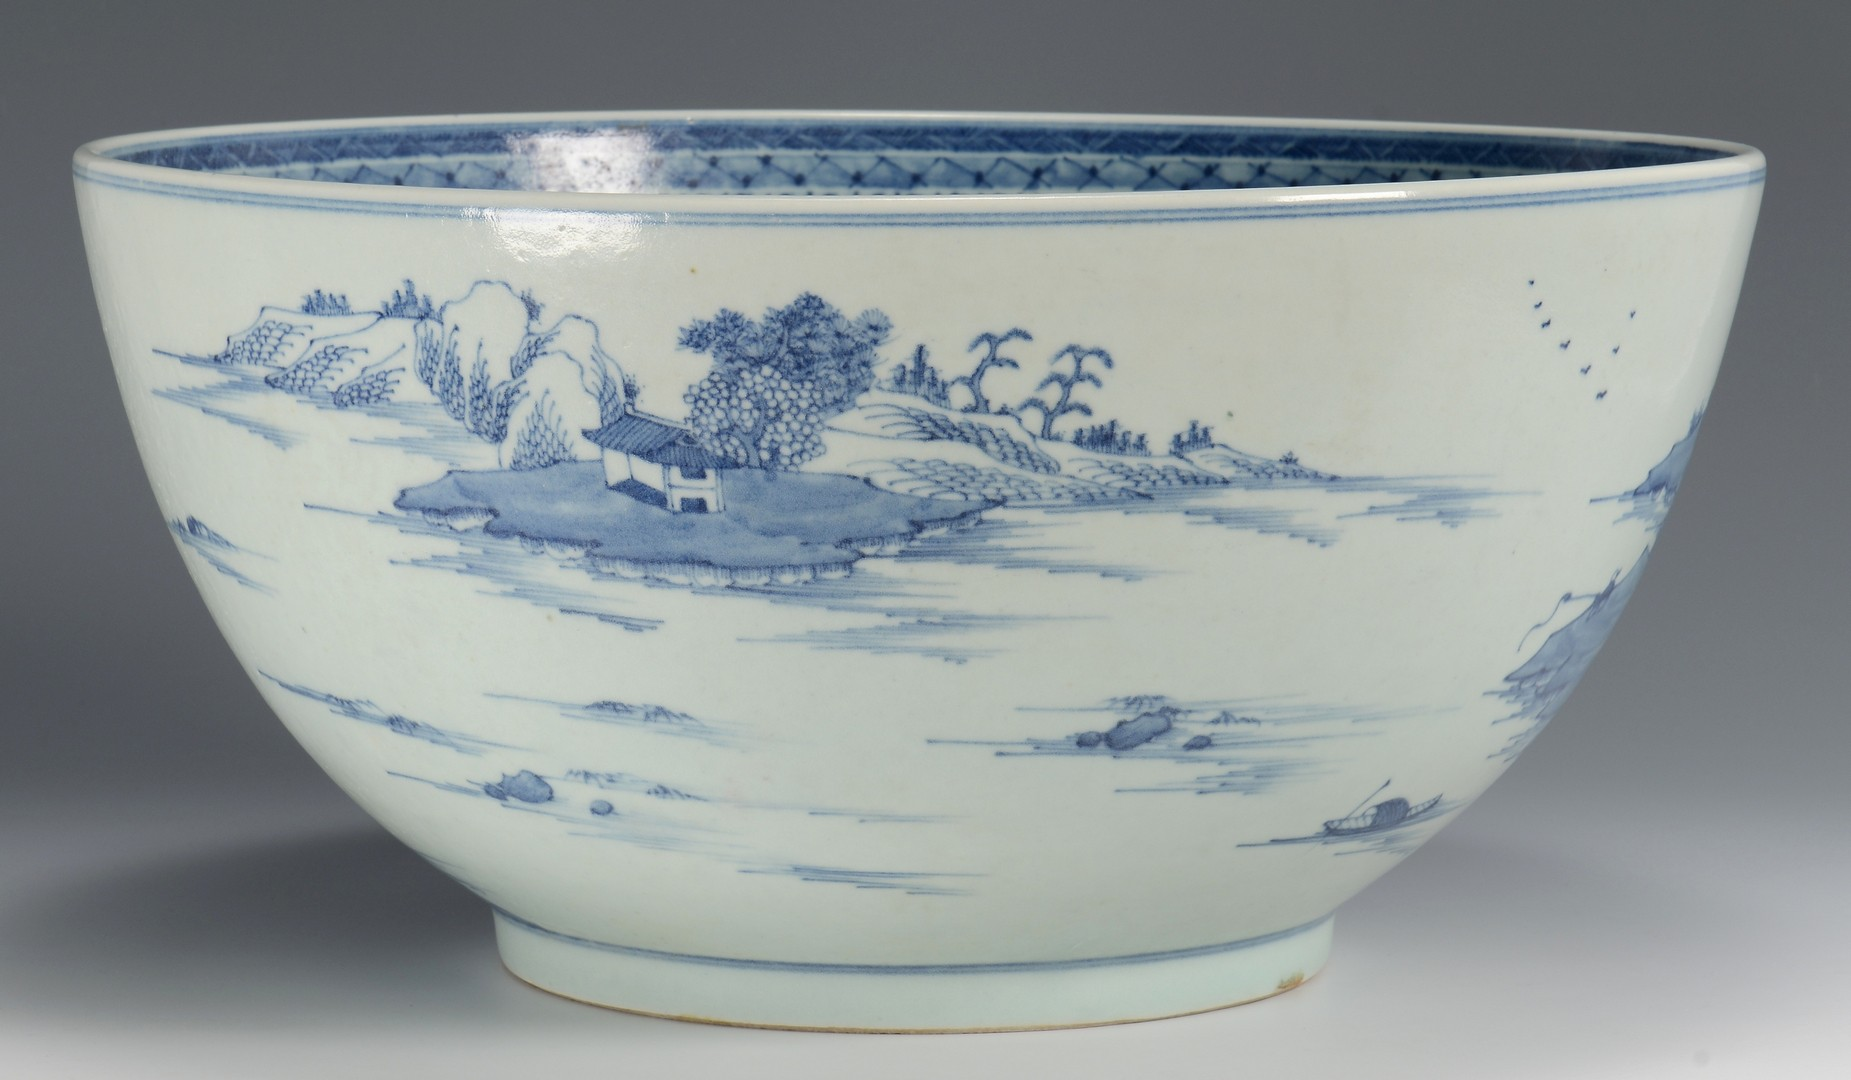 Lot 30: Large Chinese Export Porcelain Punch Bowl